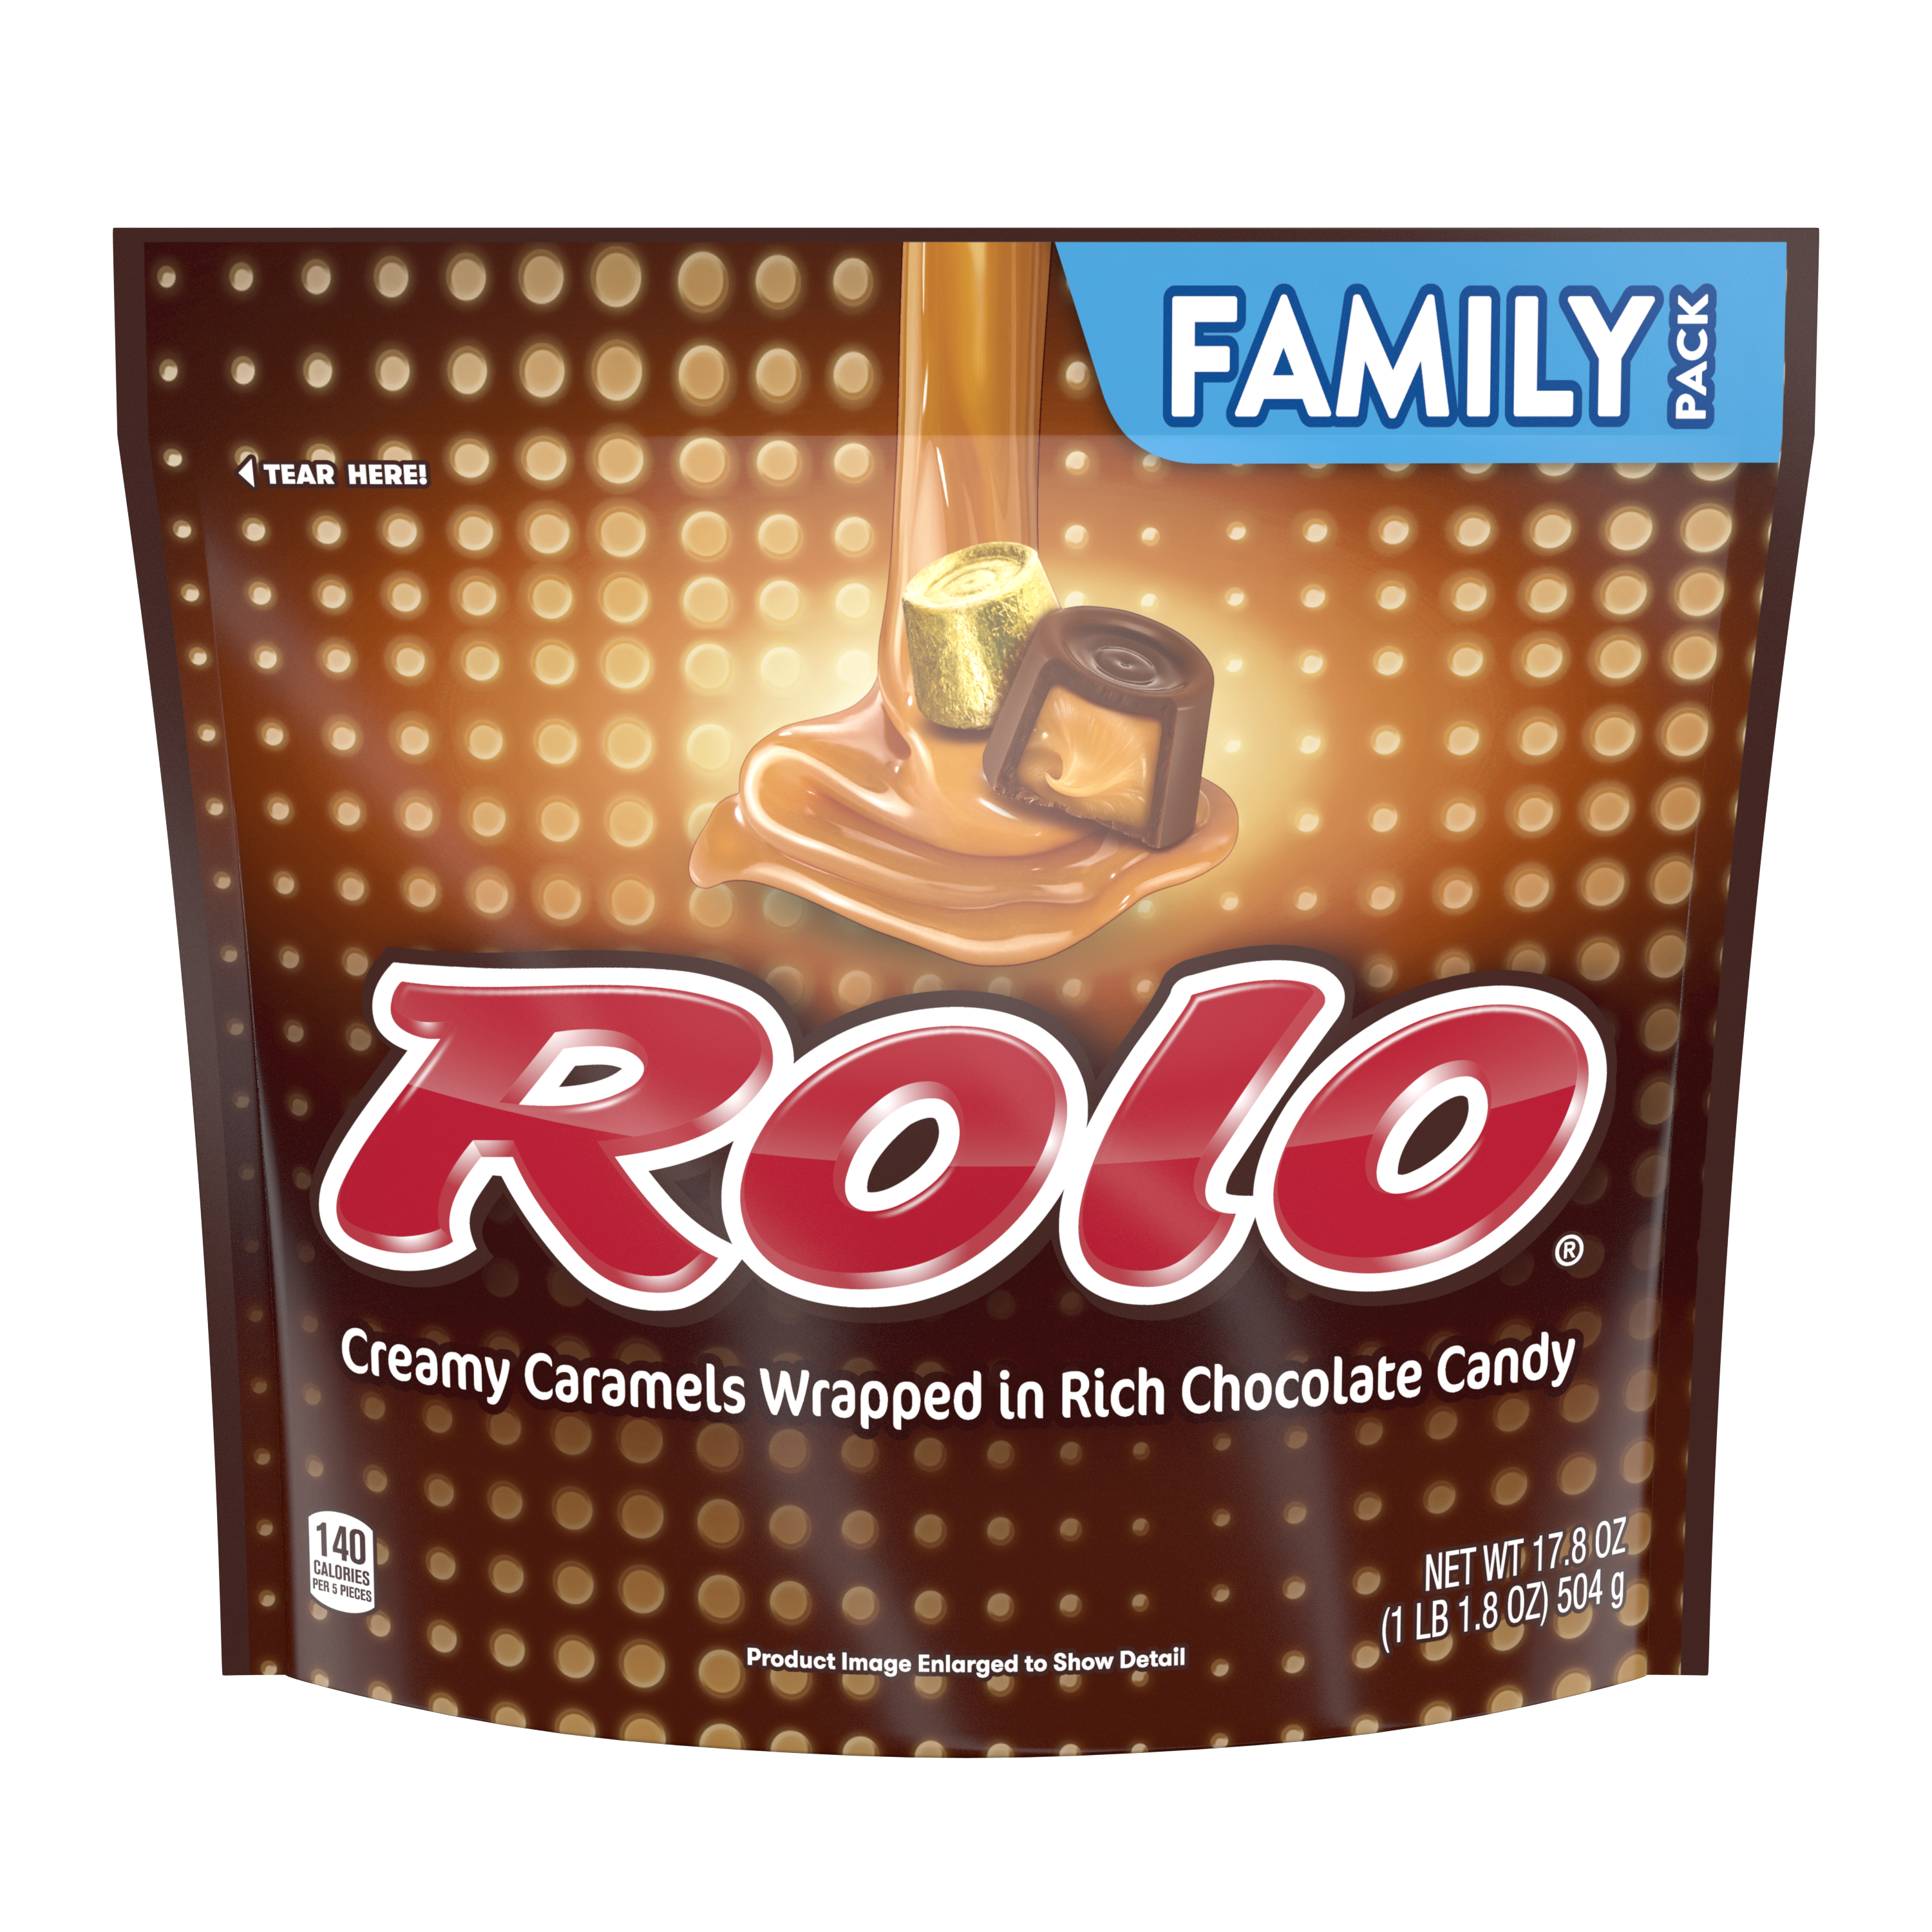 ROLO® Creamy Caramels in Rich Chocolate Candy, 17.8 oz bag - Front of Package